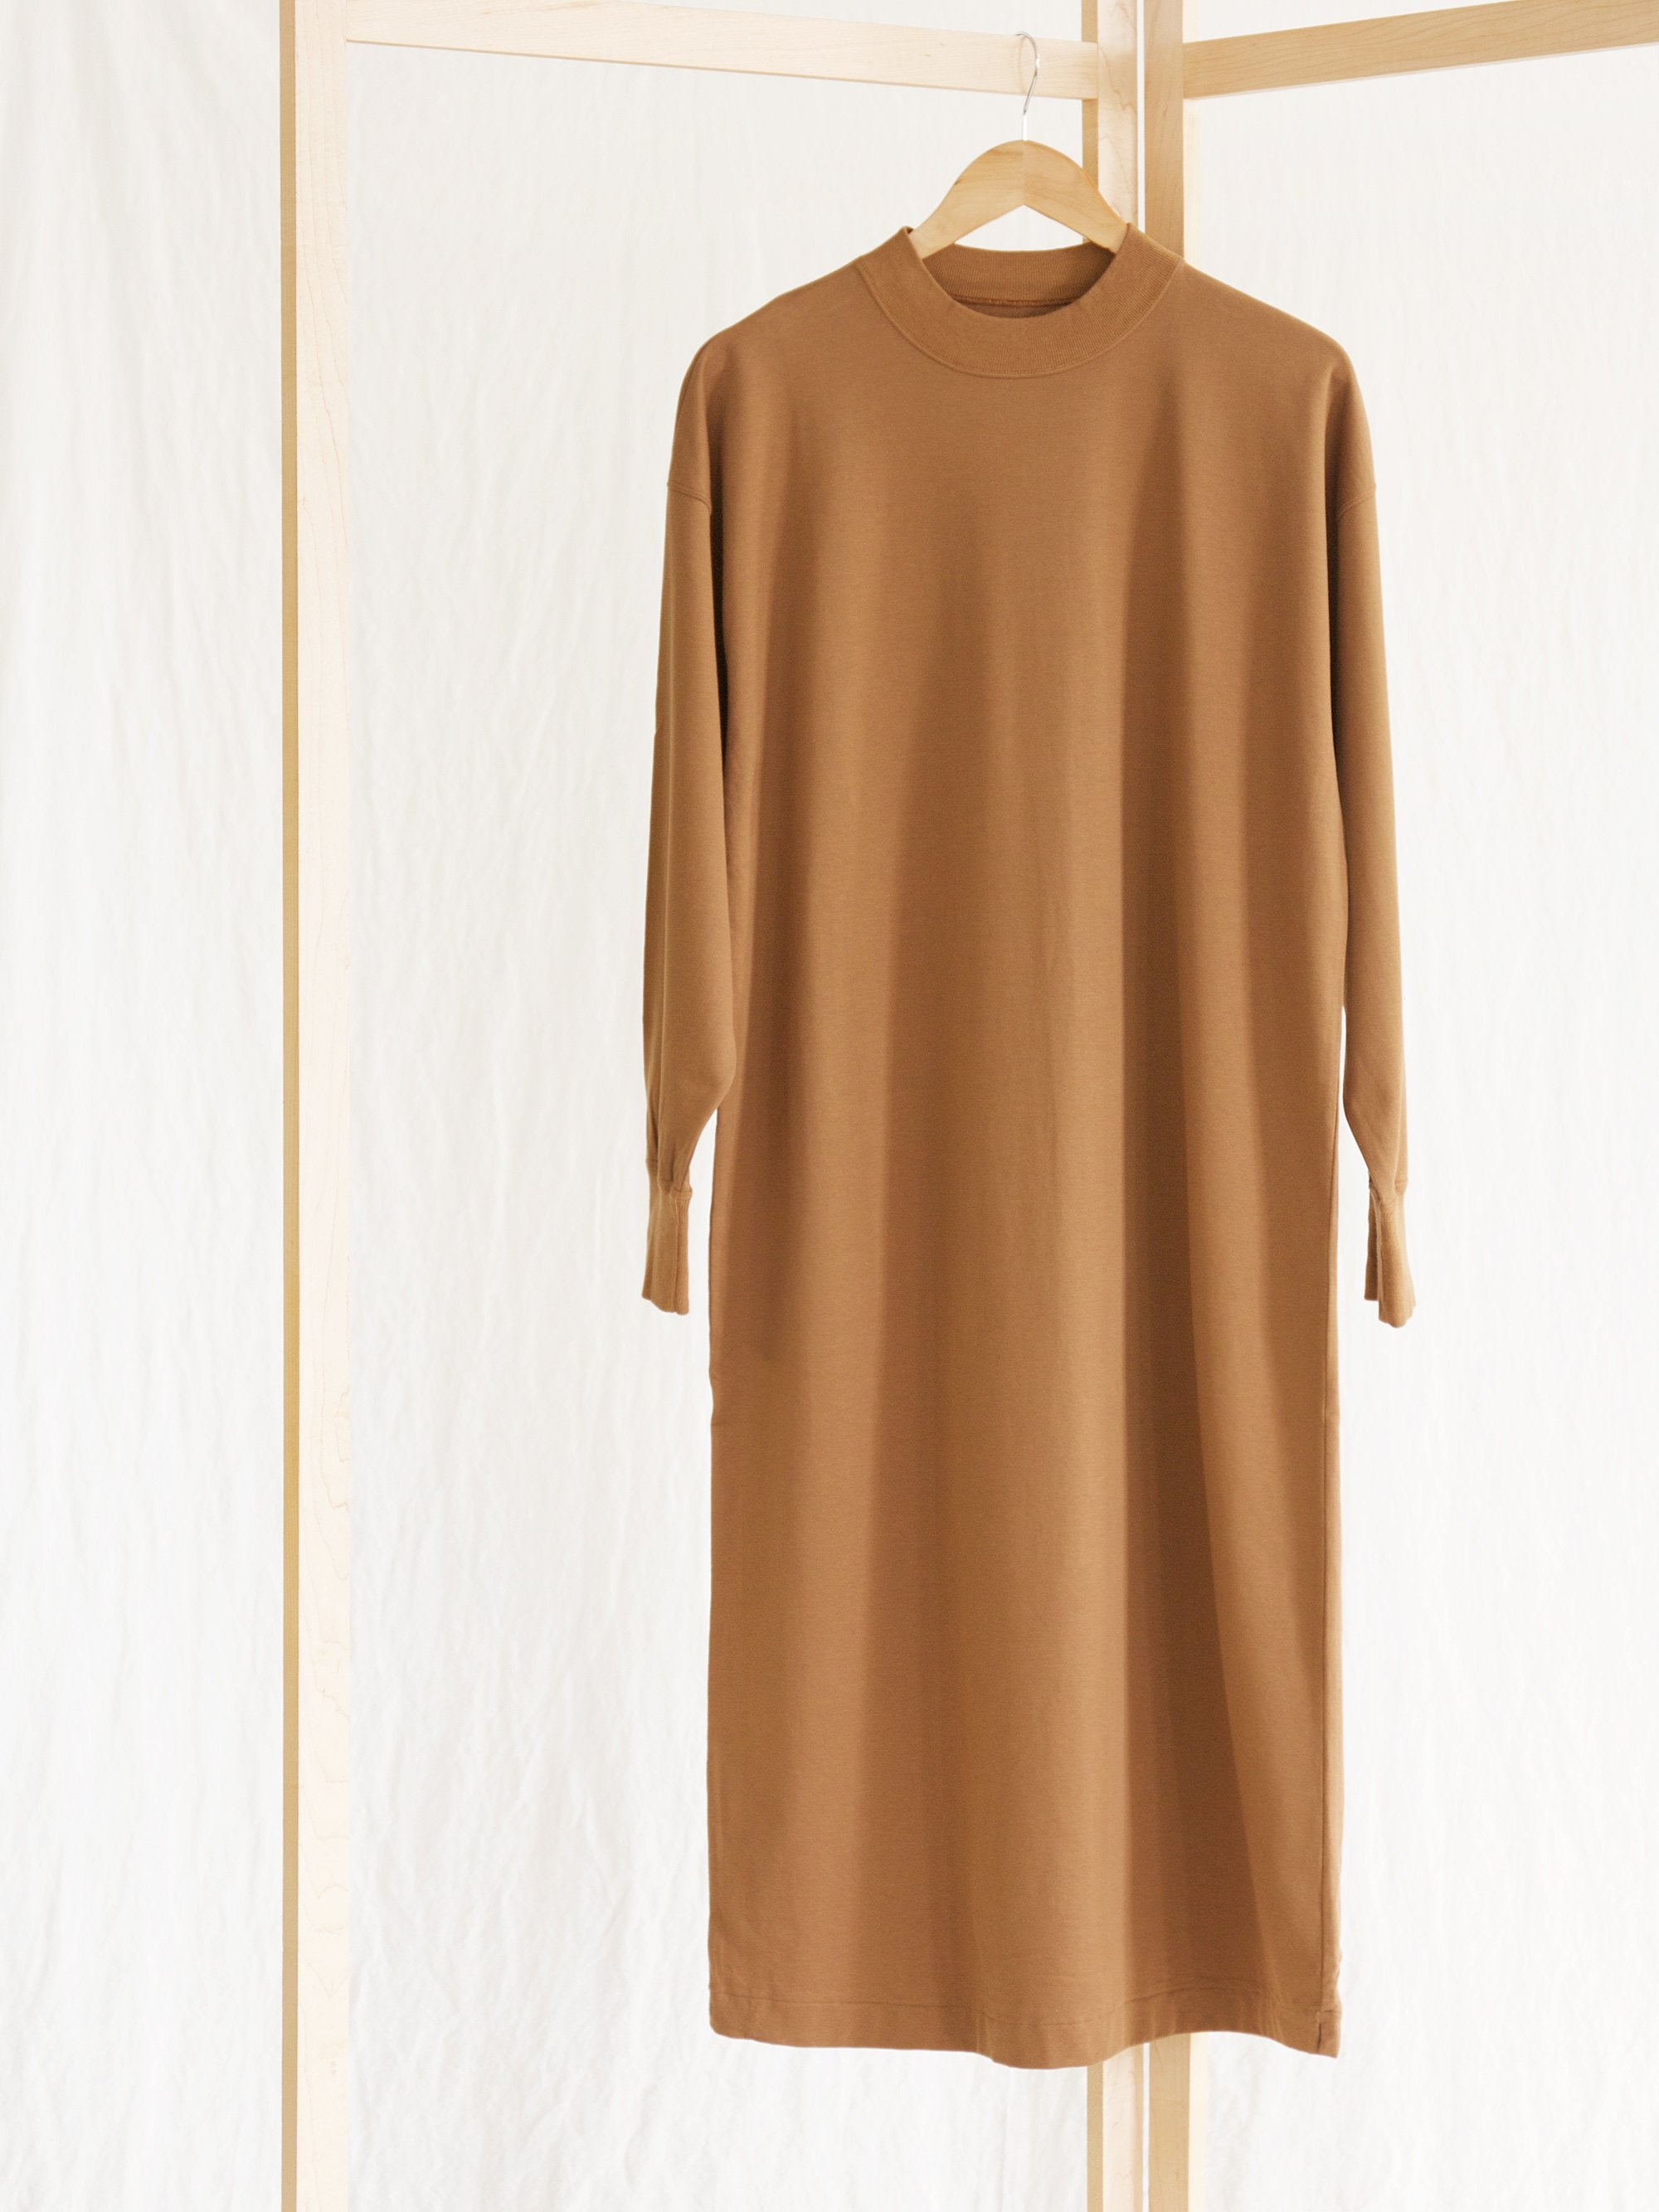 Namu Shop - Phlannel Brushed Fine Gauge Cotton Long Dress